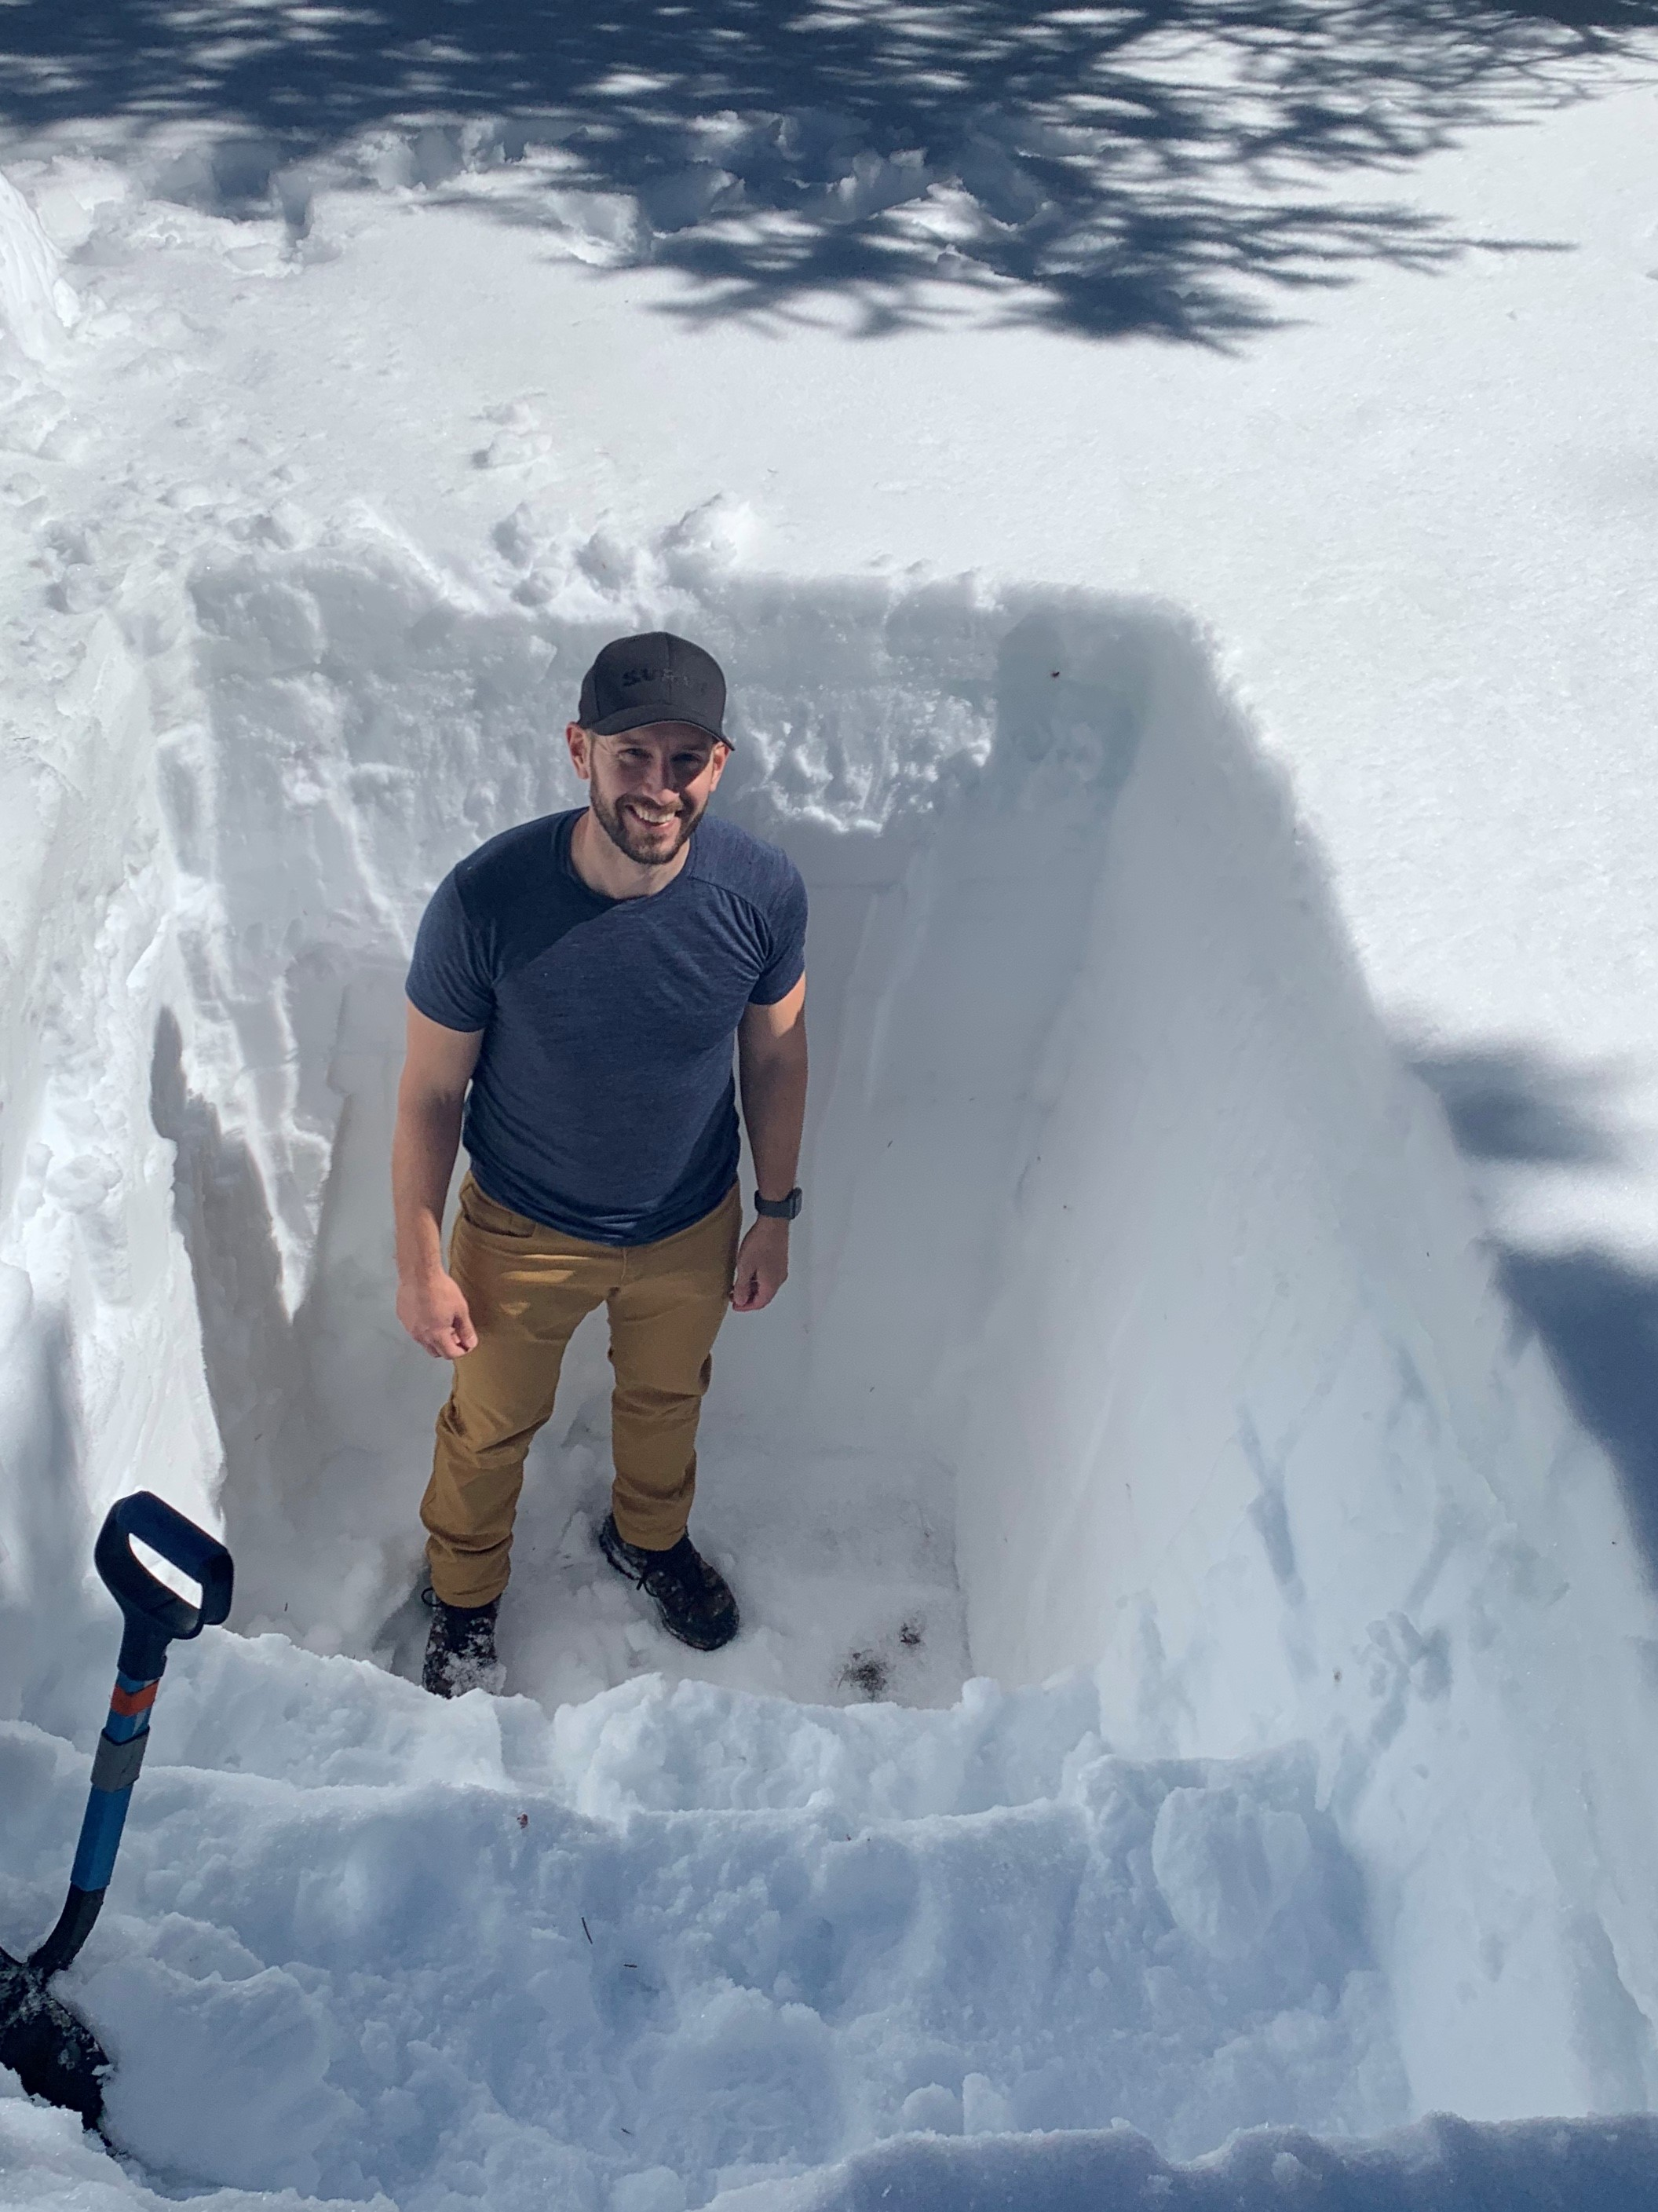 A man stands at the bottom of a pit carved out of snow, smiling up at the camera. The pit is about as deep as he is tall.